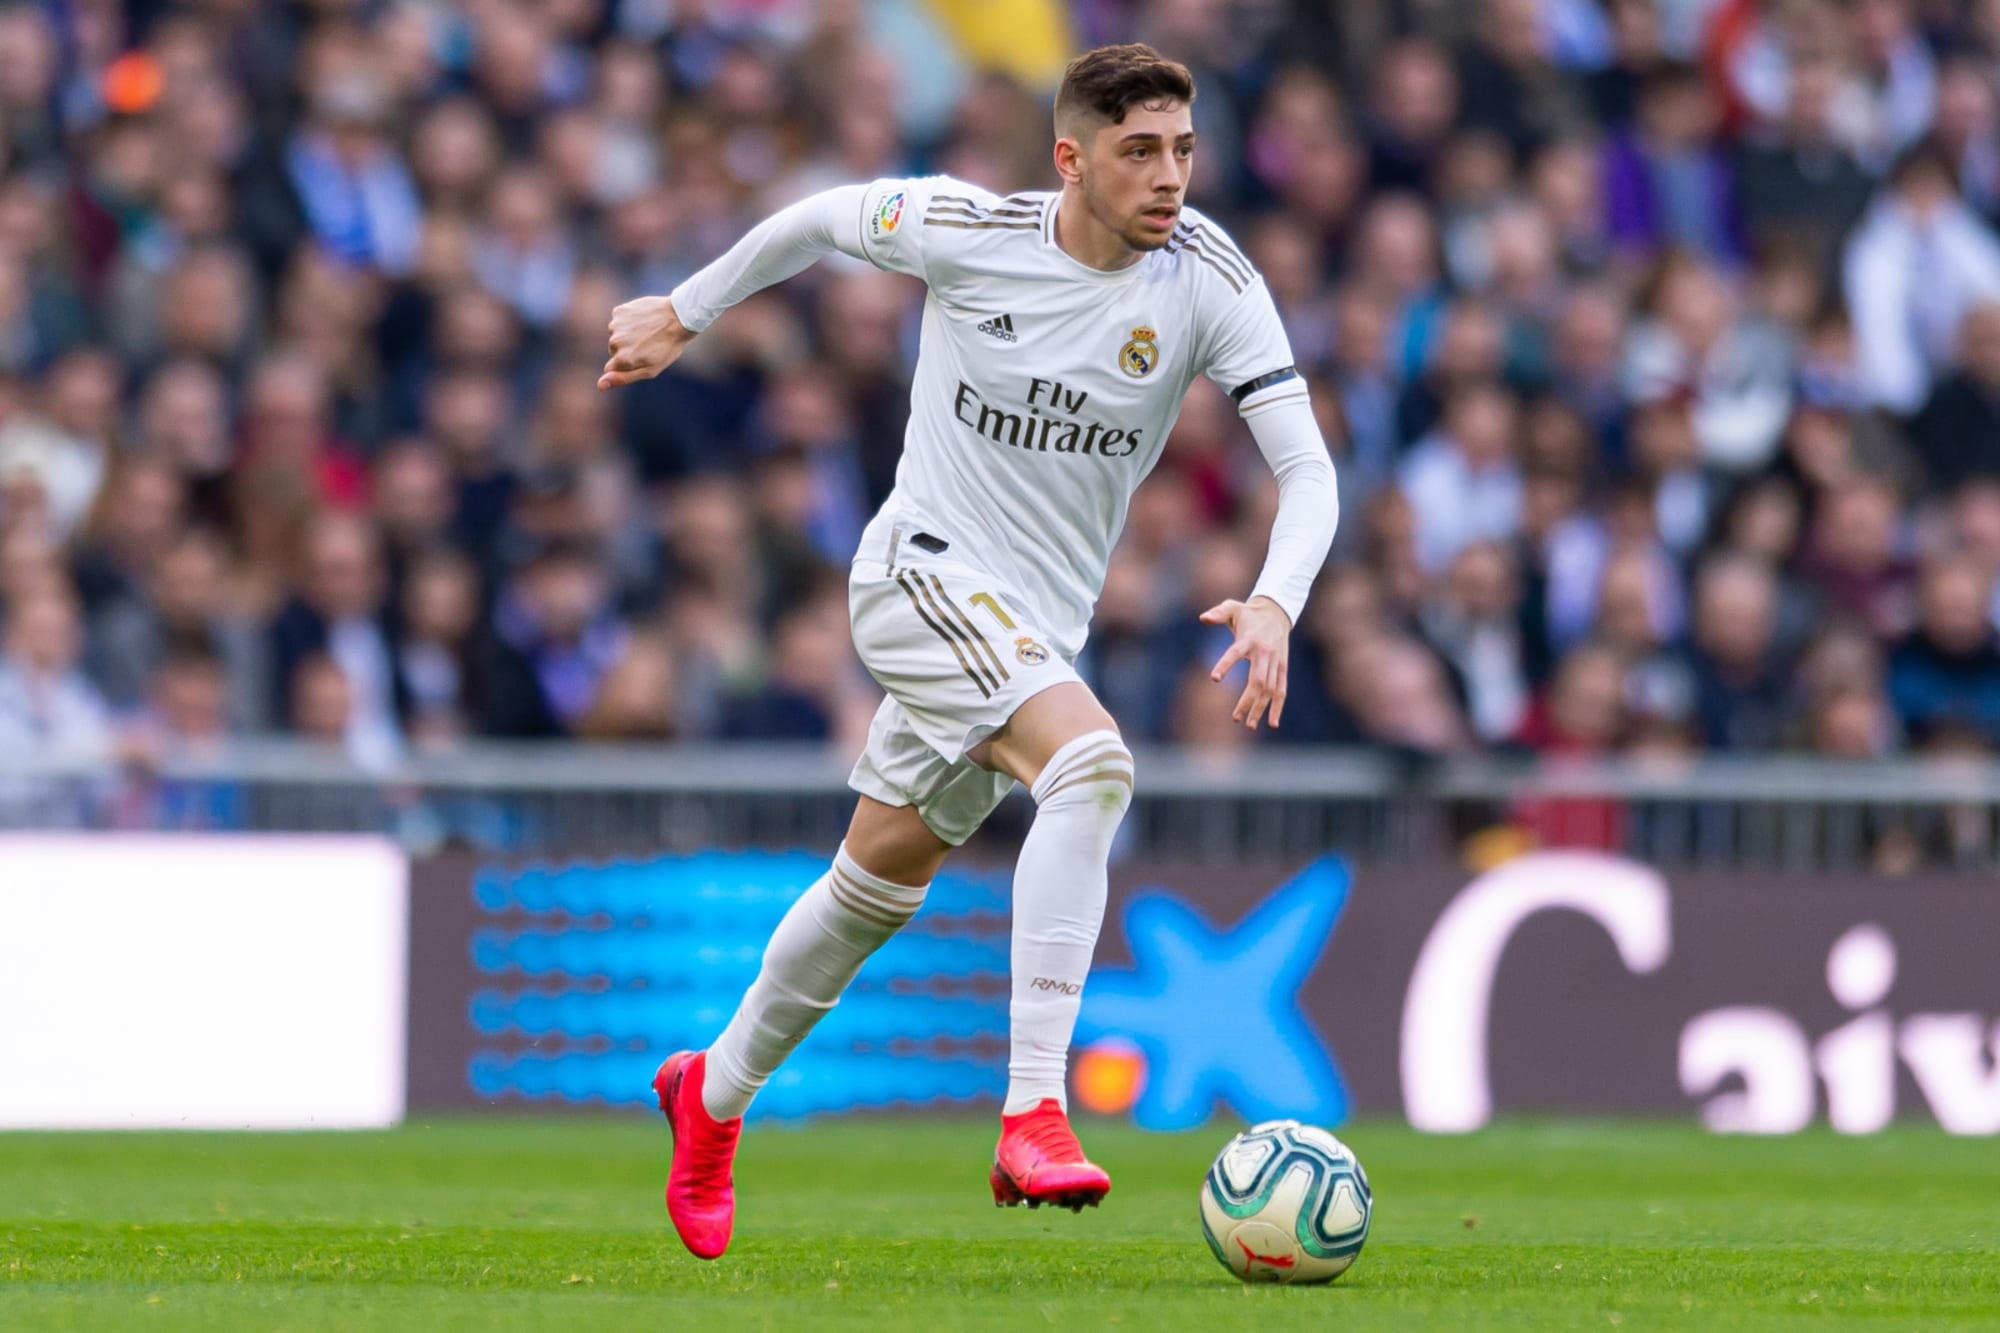 Real Madrid: Fede Valverde is already a big-game player